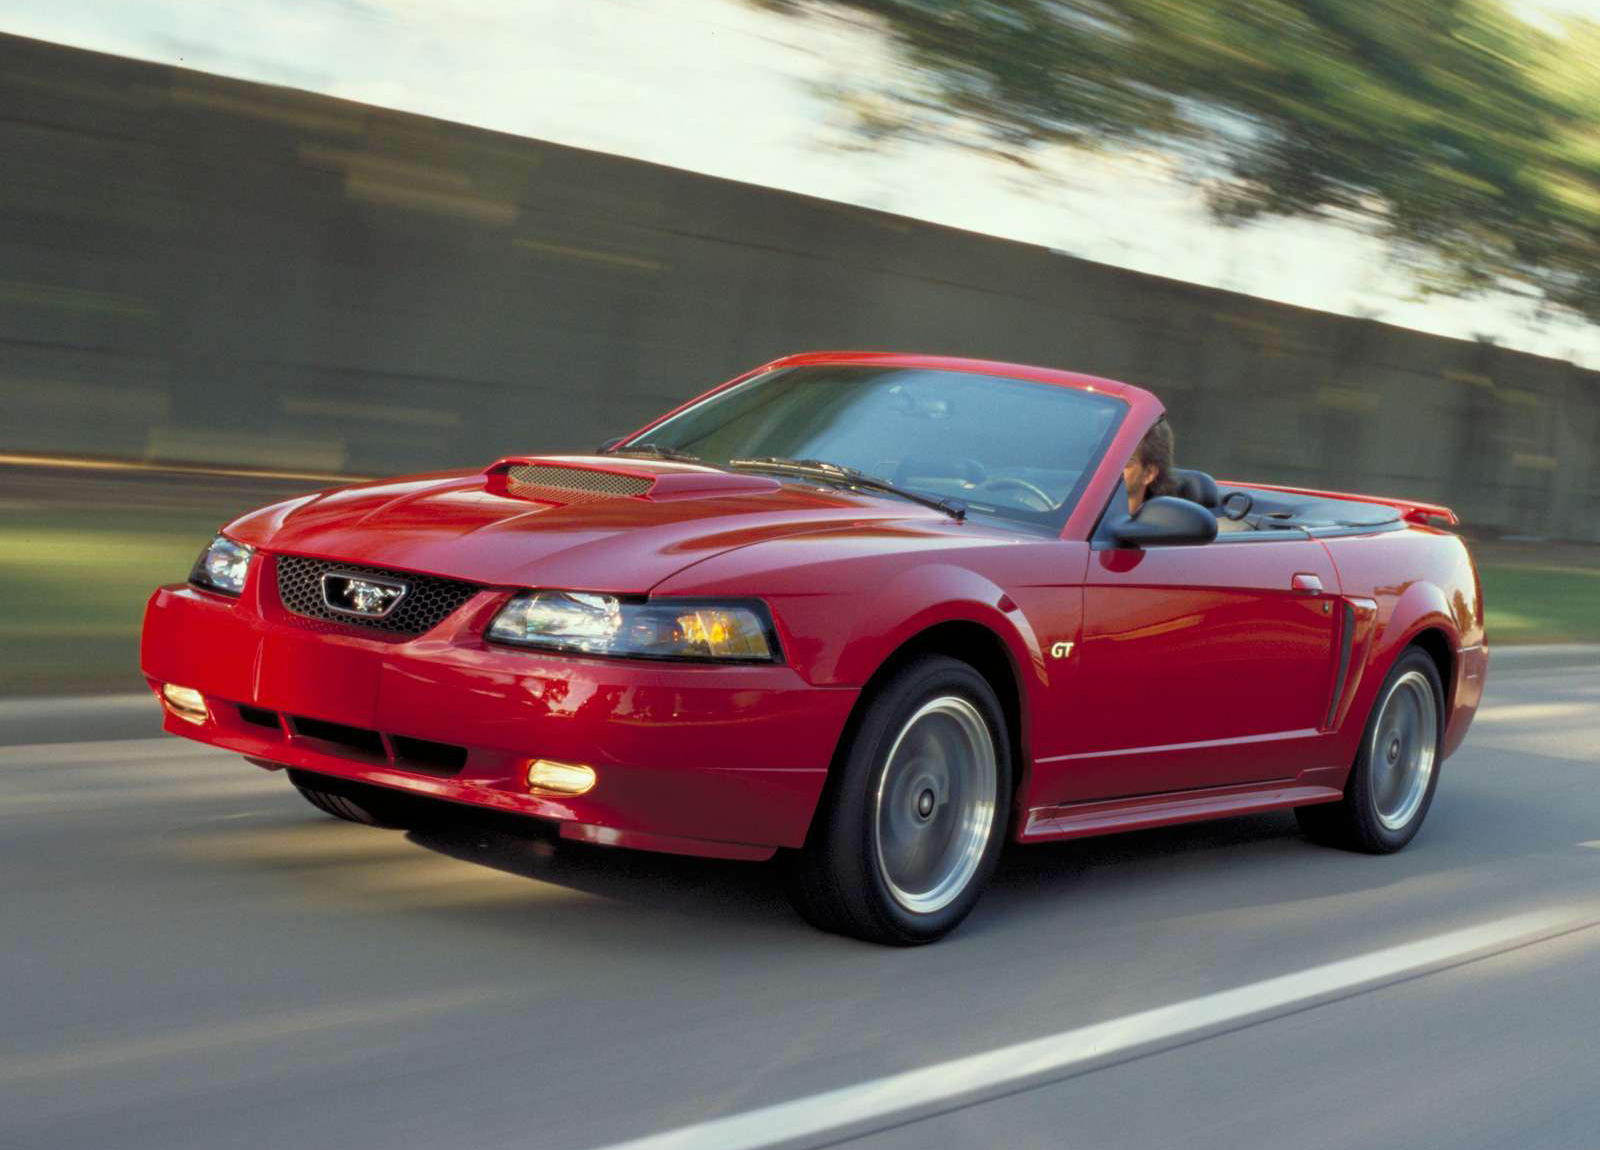 Ford Mustang GT Convertible photo #1